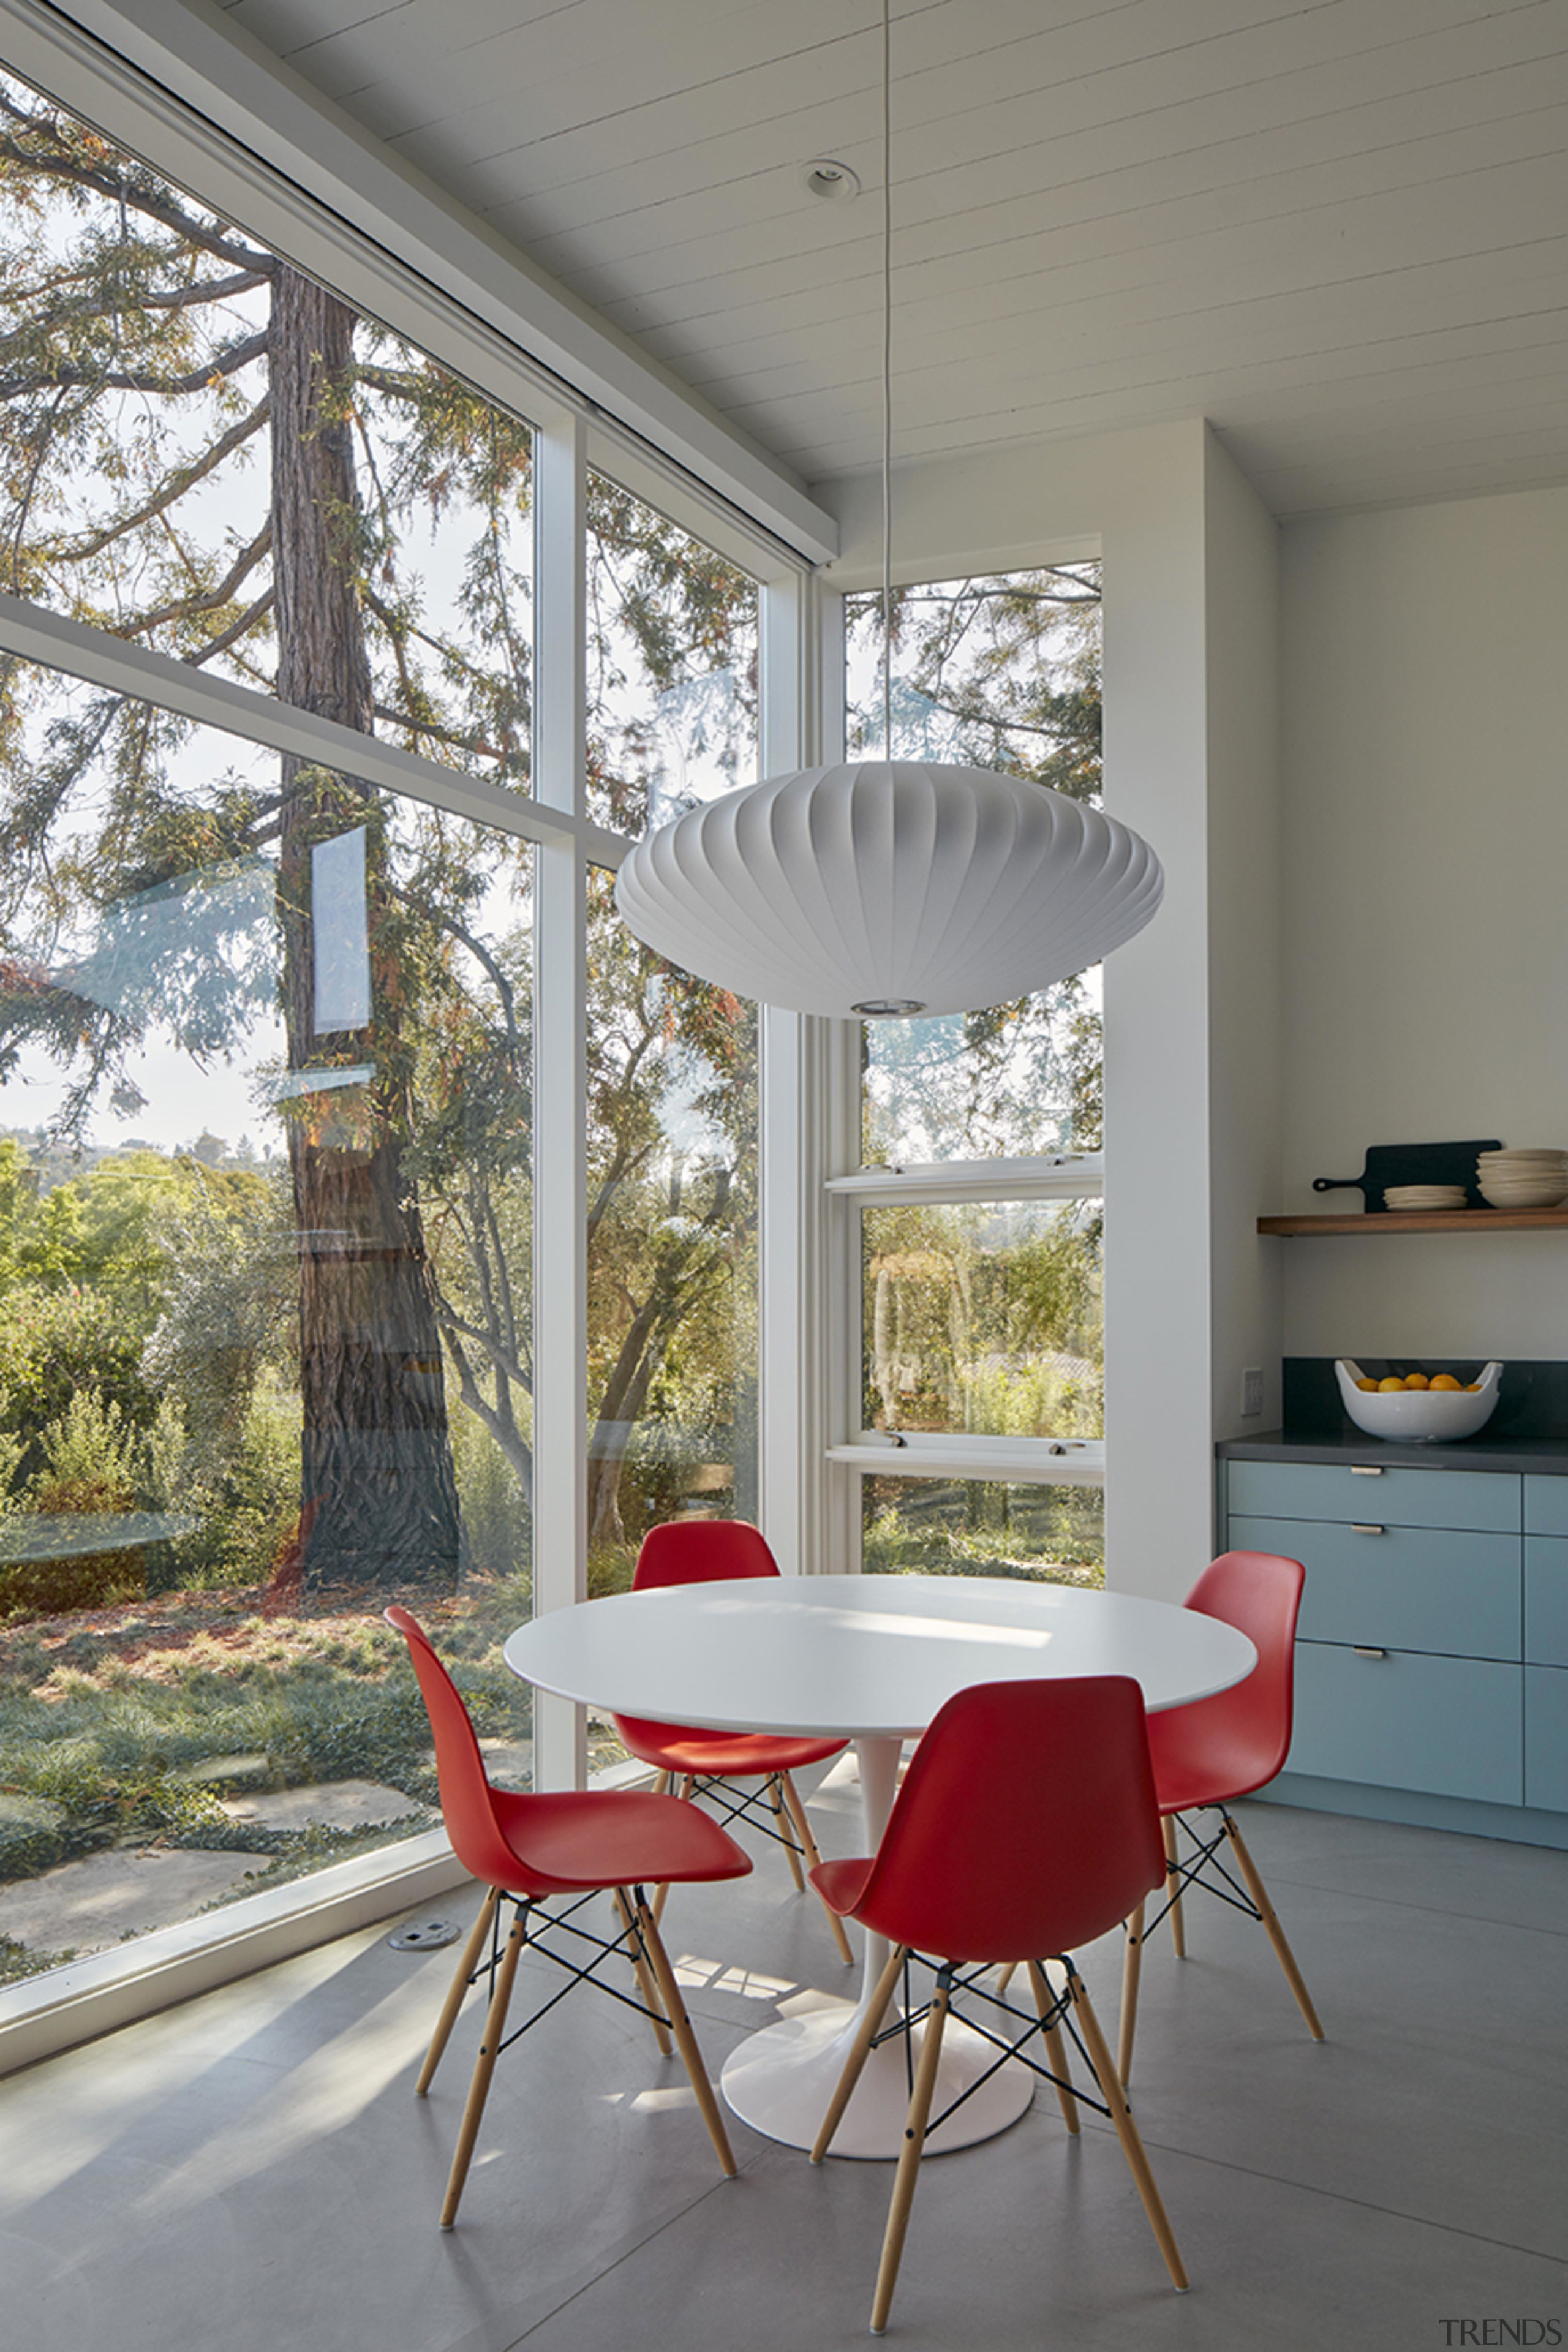 This kitchen nook overlooks the existing mature trees,